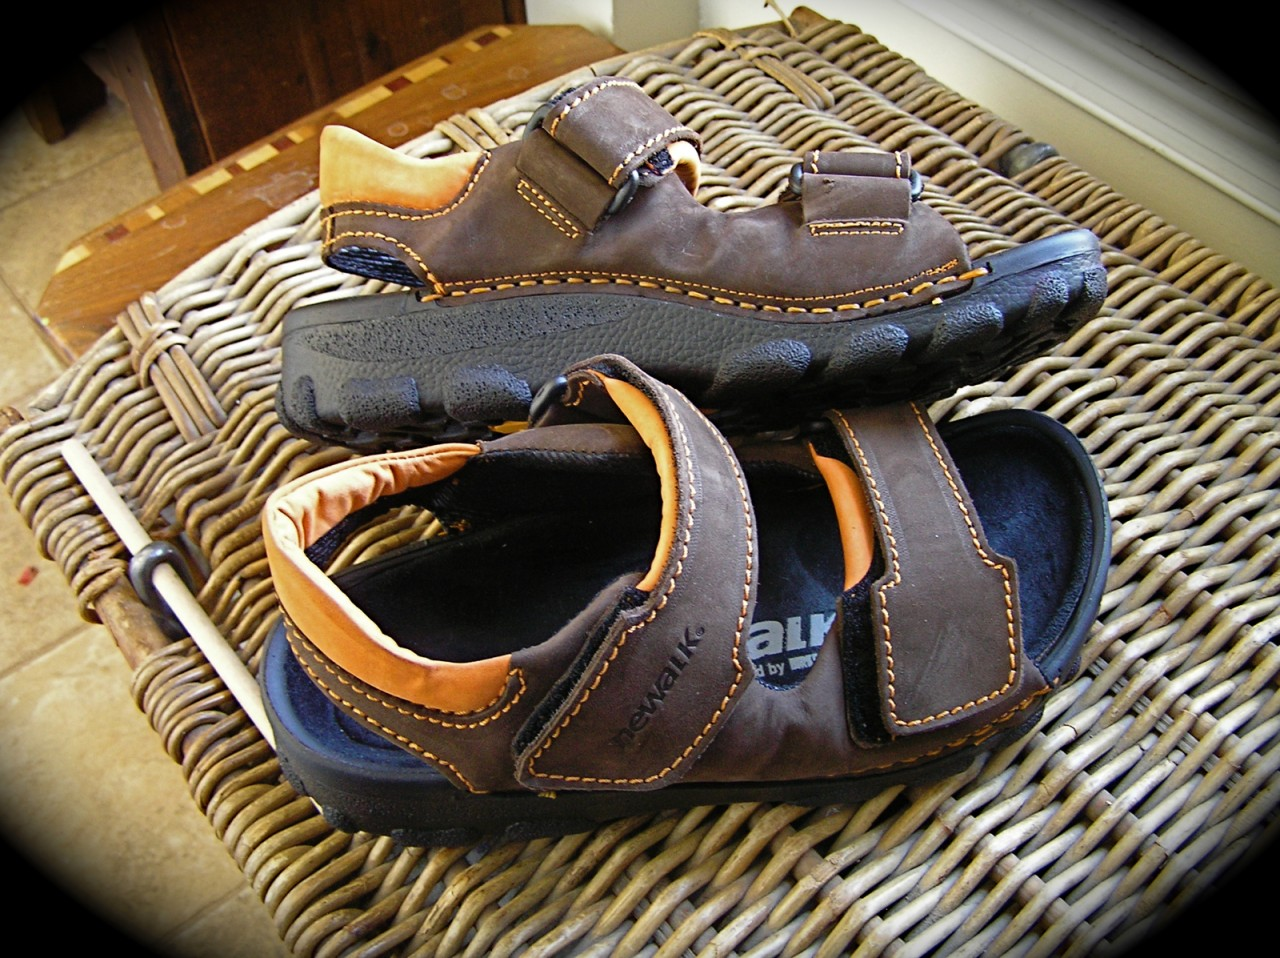 Newalk Flip Flops http://www.ebay.ca/itm/Birkenstock-TATAMI-NEWALK-OTTAWA-SANDALS-brown-or-black-/370489812812